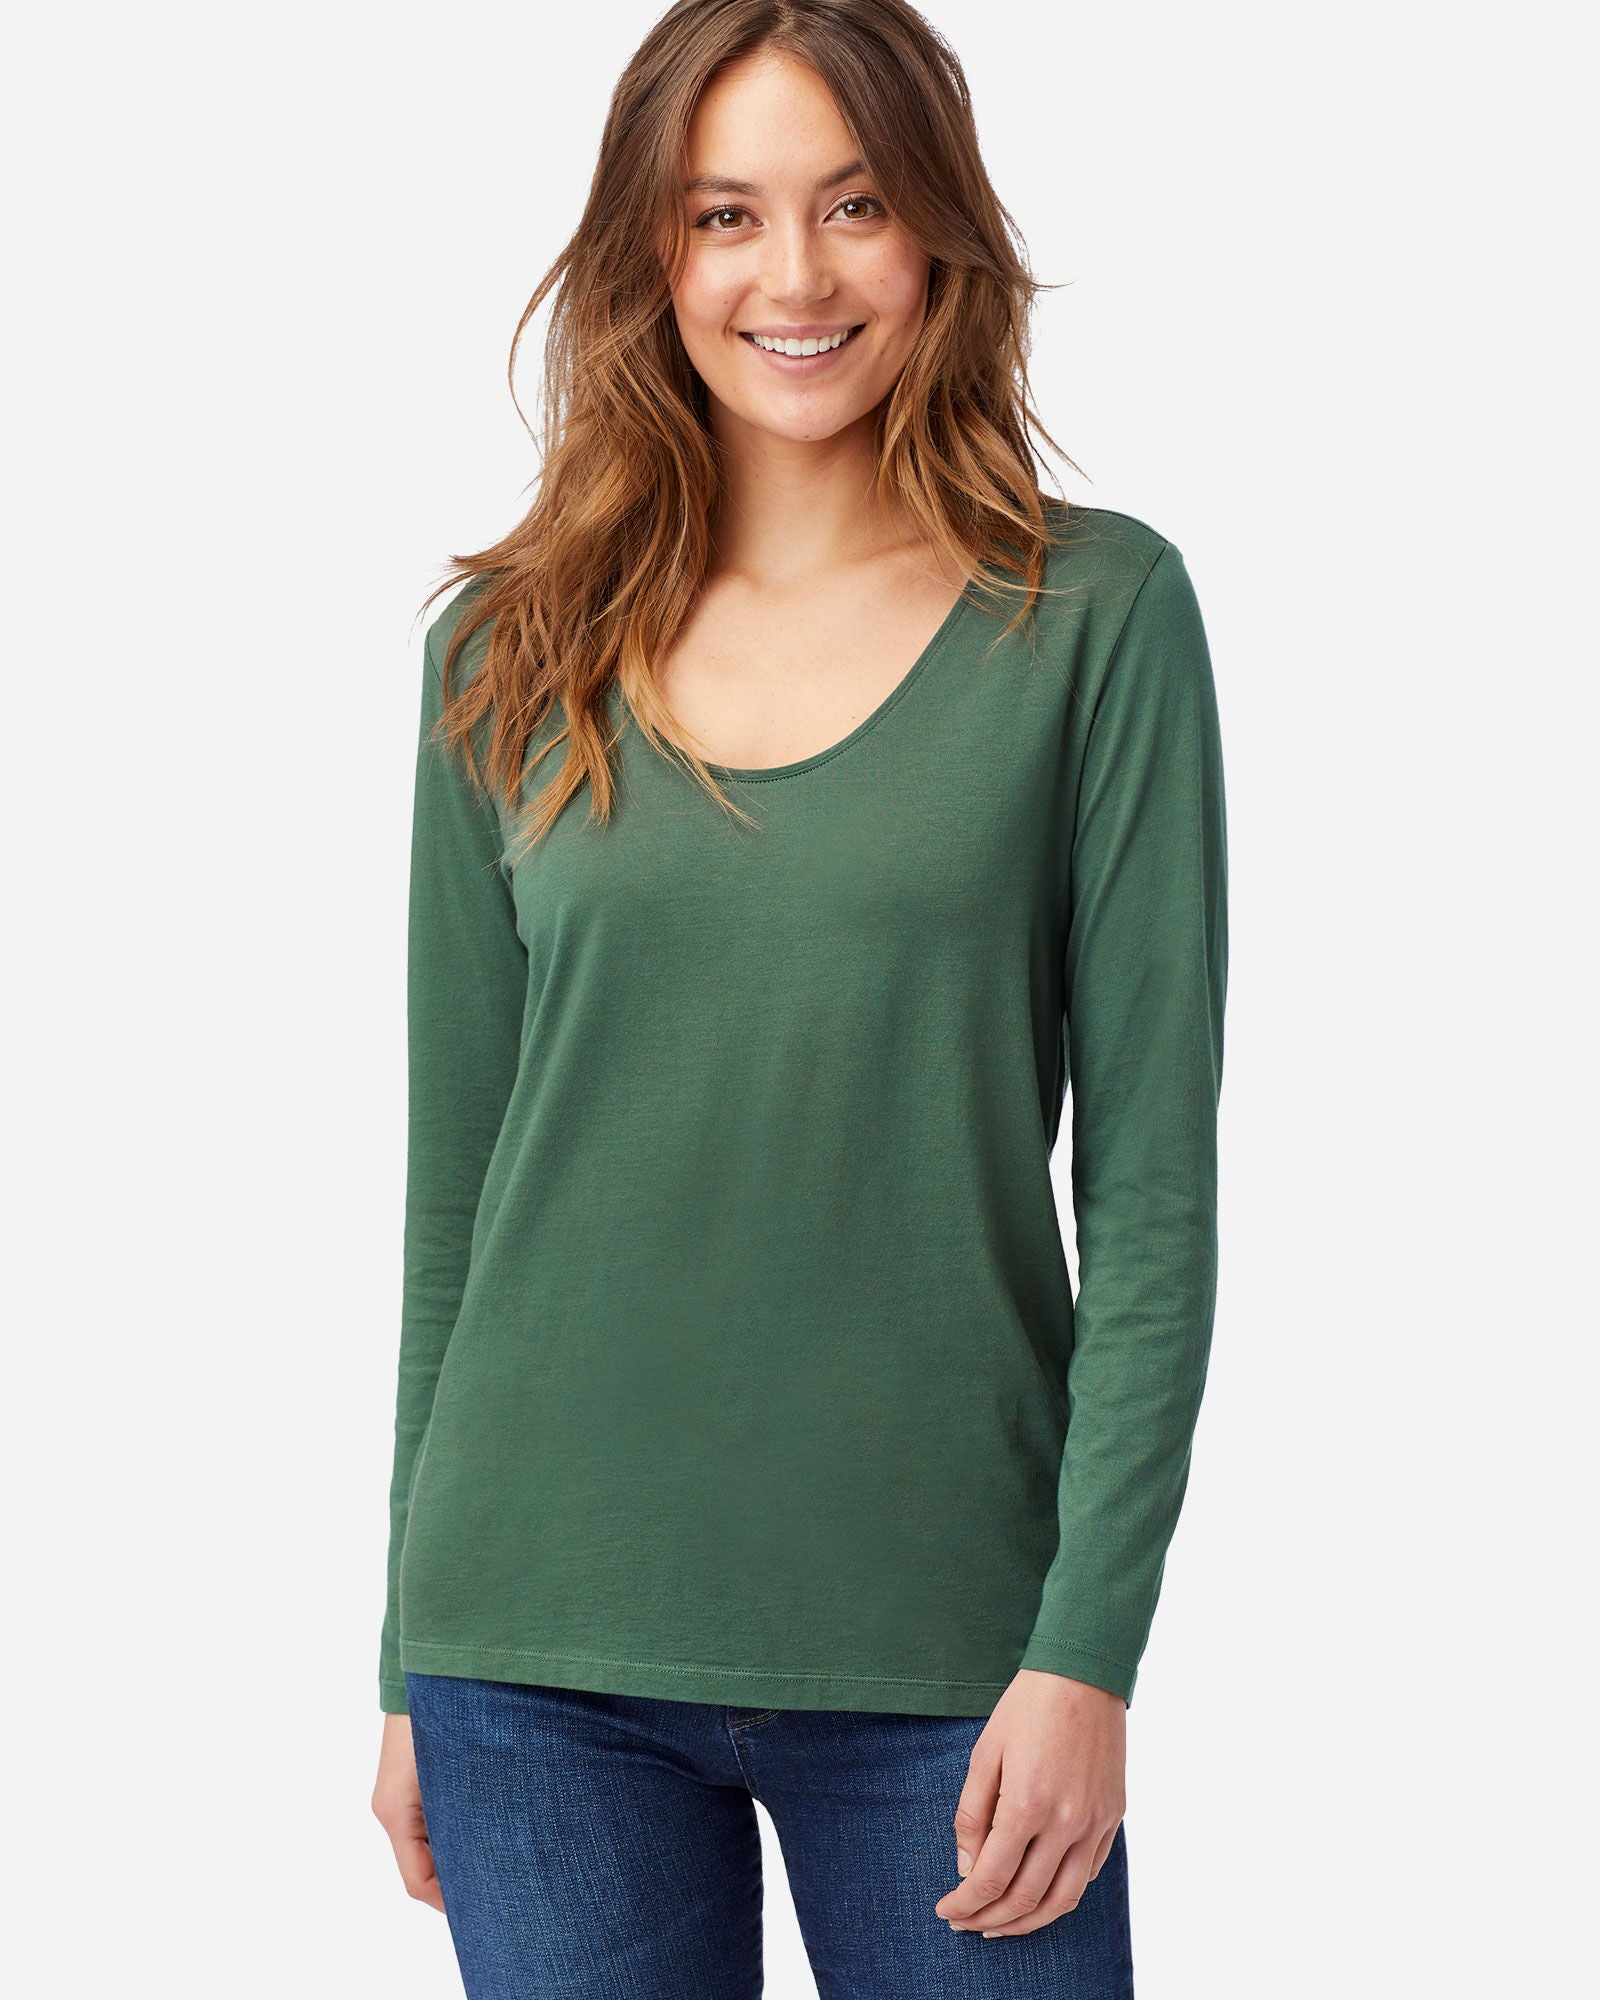 L/S Scoop Tee - Garden Green